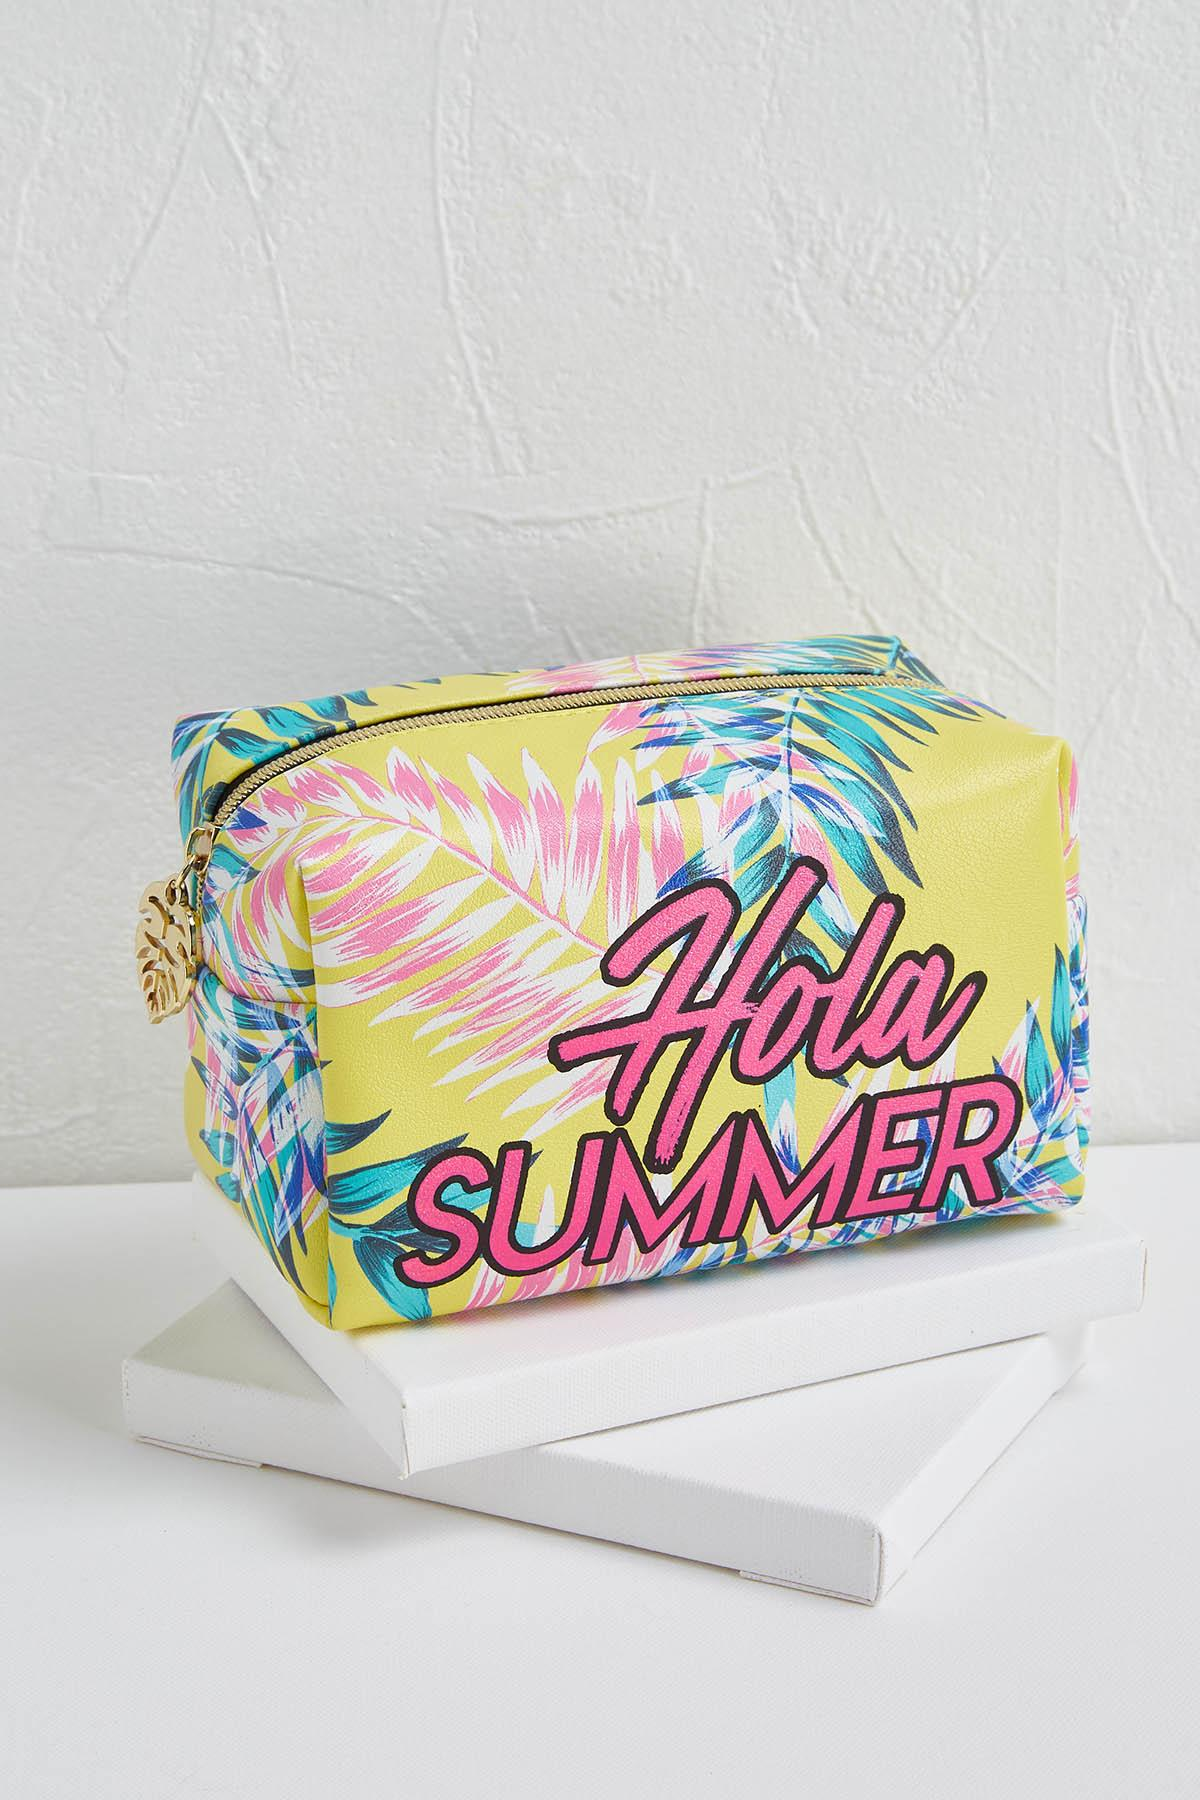 Hola Summer Zippered Pouch